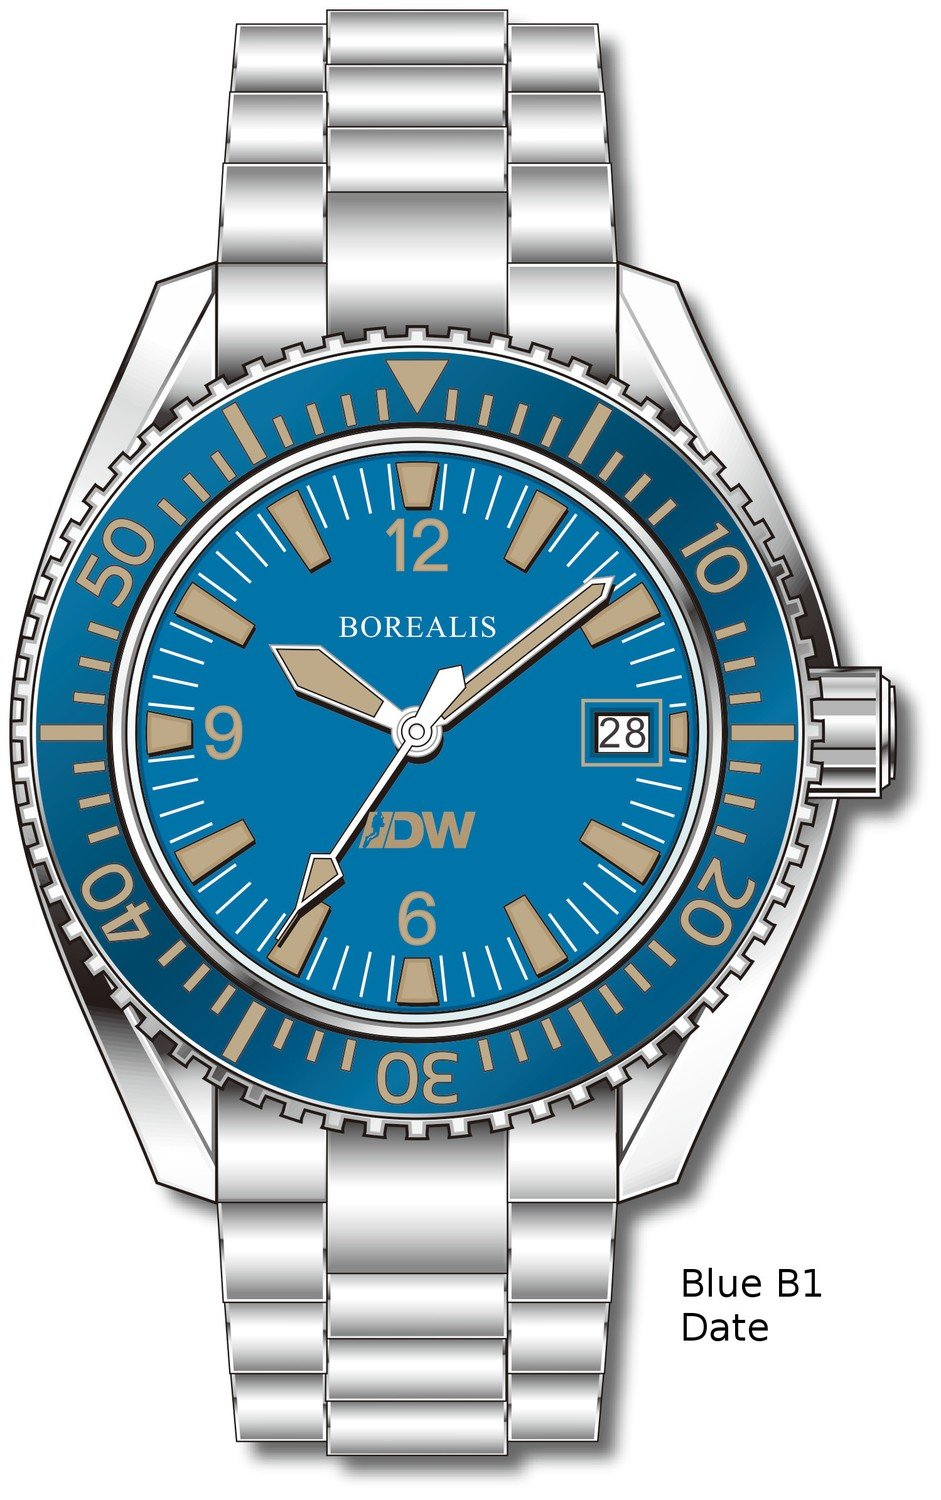 Pre-Order Borealis Estoril 300 for Diver's Watches Facebook Group Blue Dial Arabic Numbers Date Blue B1 Date